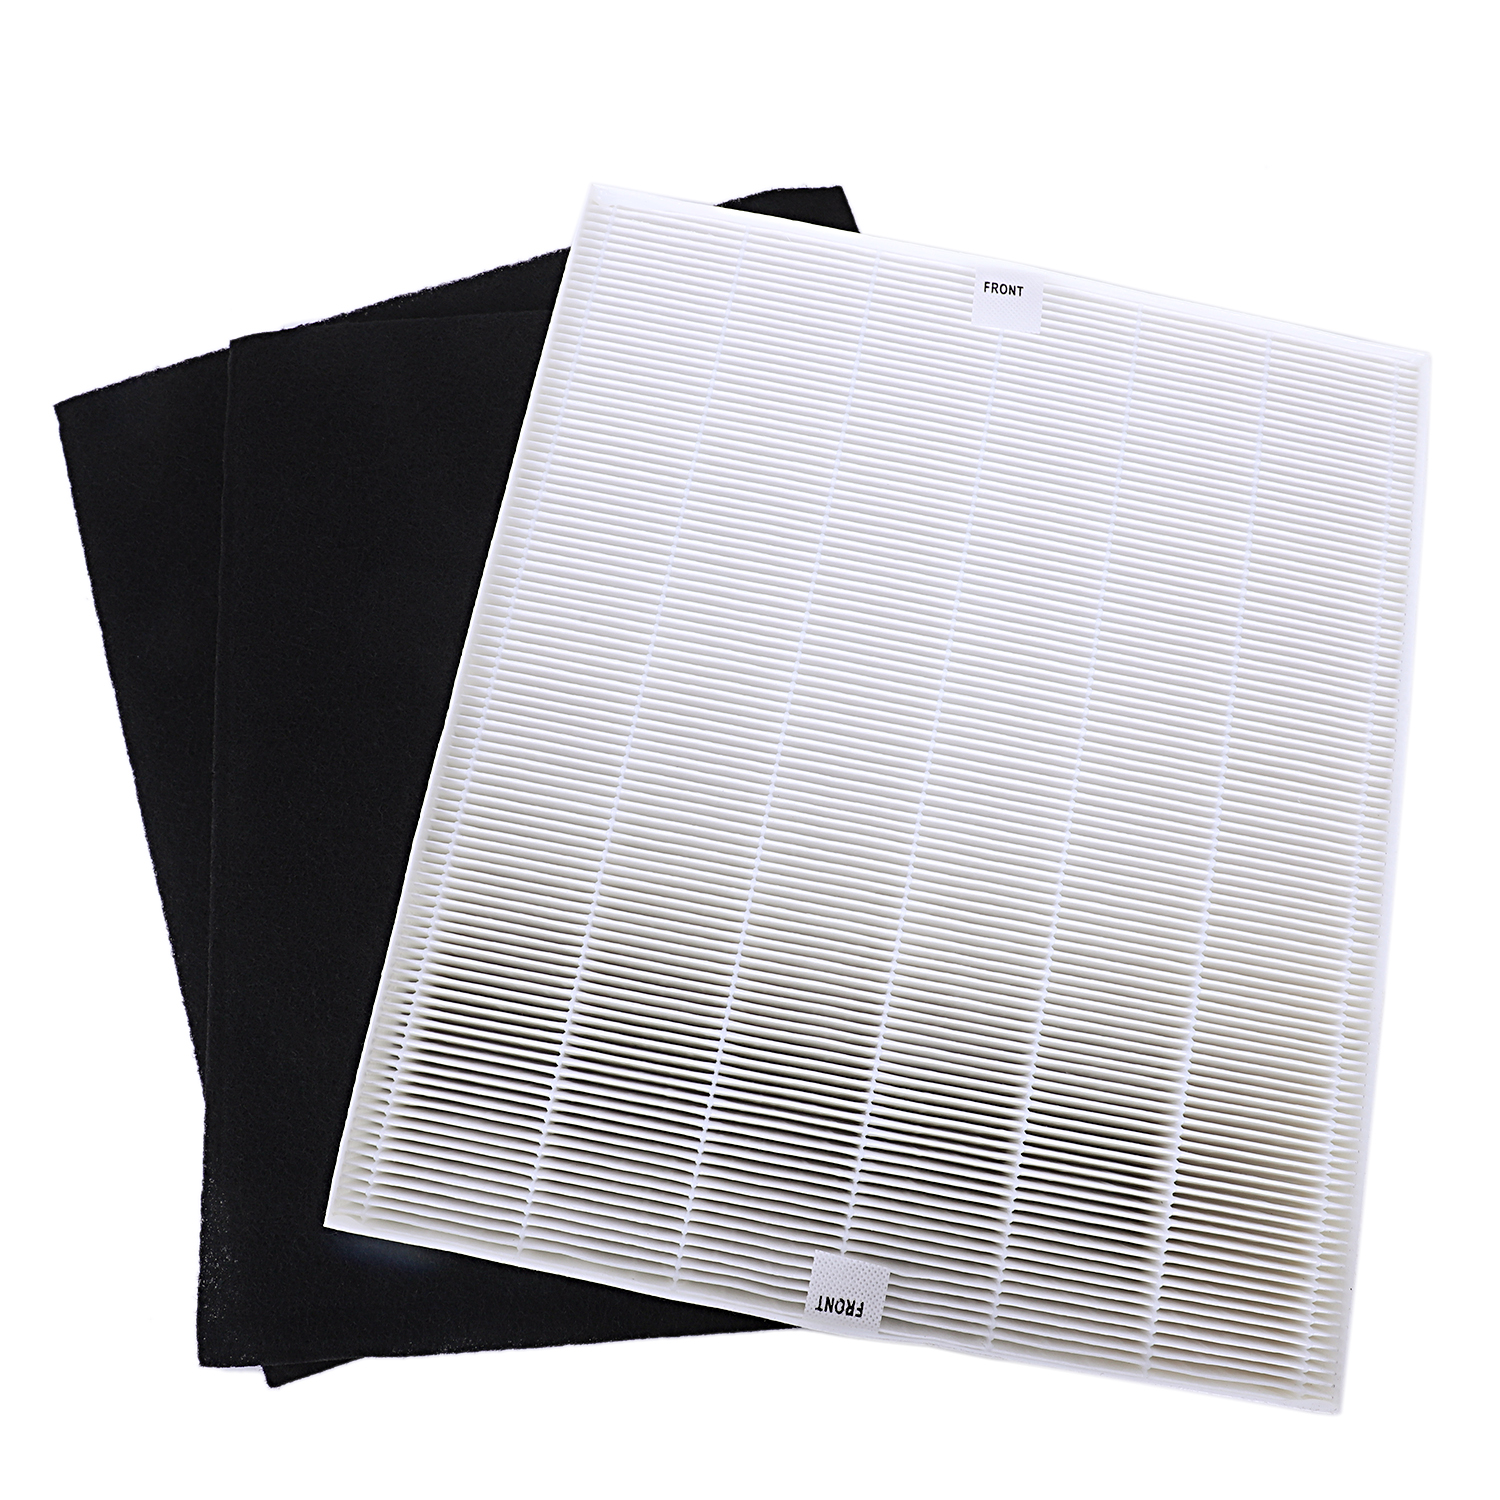 Best Sell New 1Pcs HEPA Filter And 2 Pcs Carbon Filters Replacement Filter For Coway AP1512HH brand new total 16 pcs 10x aerovac filters